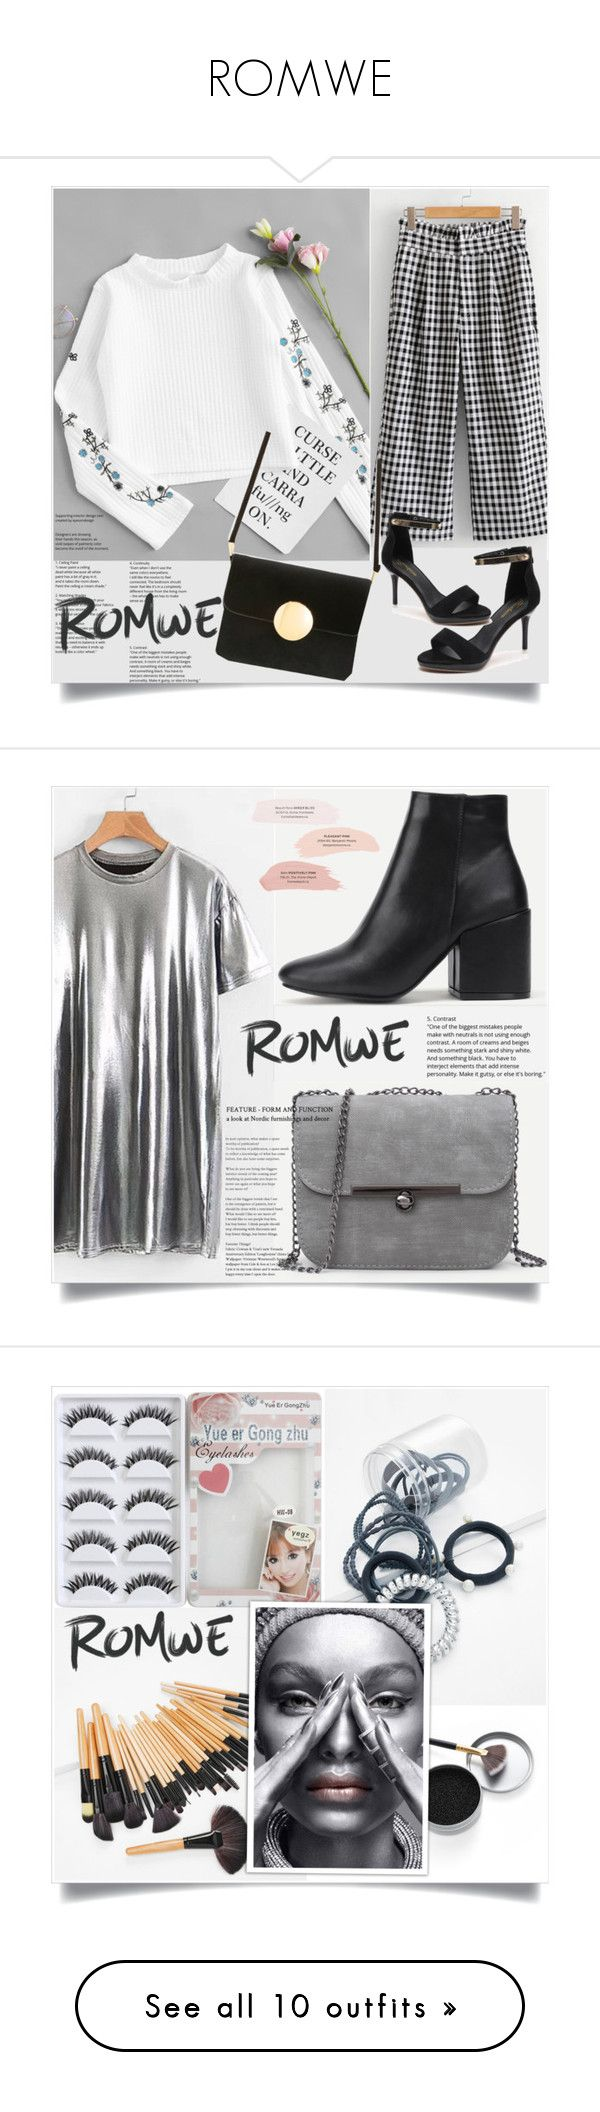 """ROMWE"" by zenabezimena ❤ liked on Polyvore featuring romwe, polyvoreeditorial, makeup, romwefashion, Christian Dior and Oris"